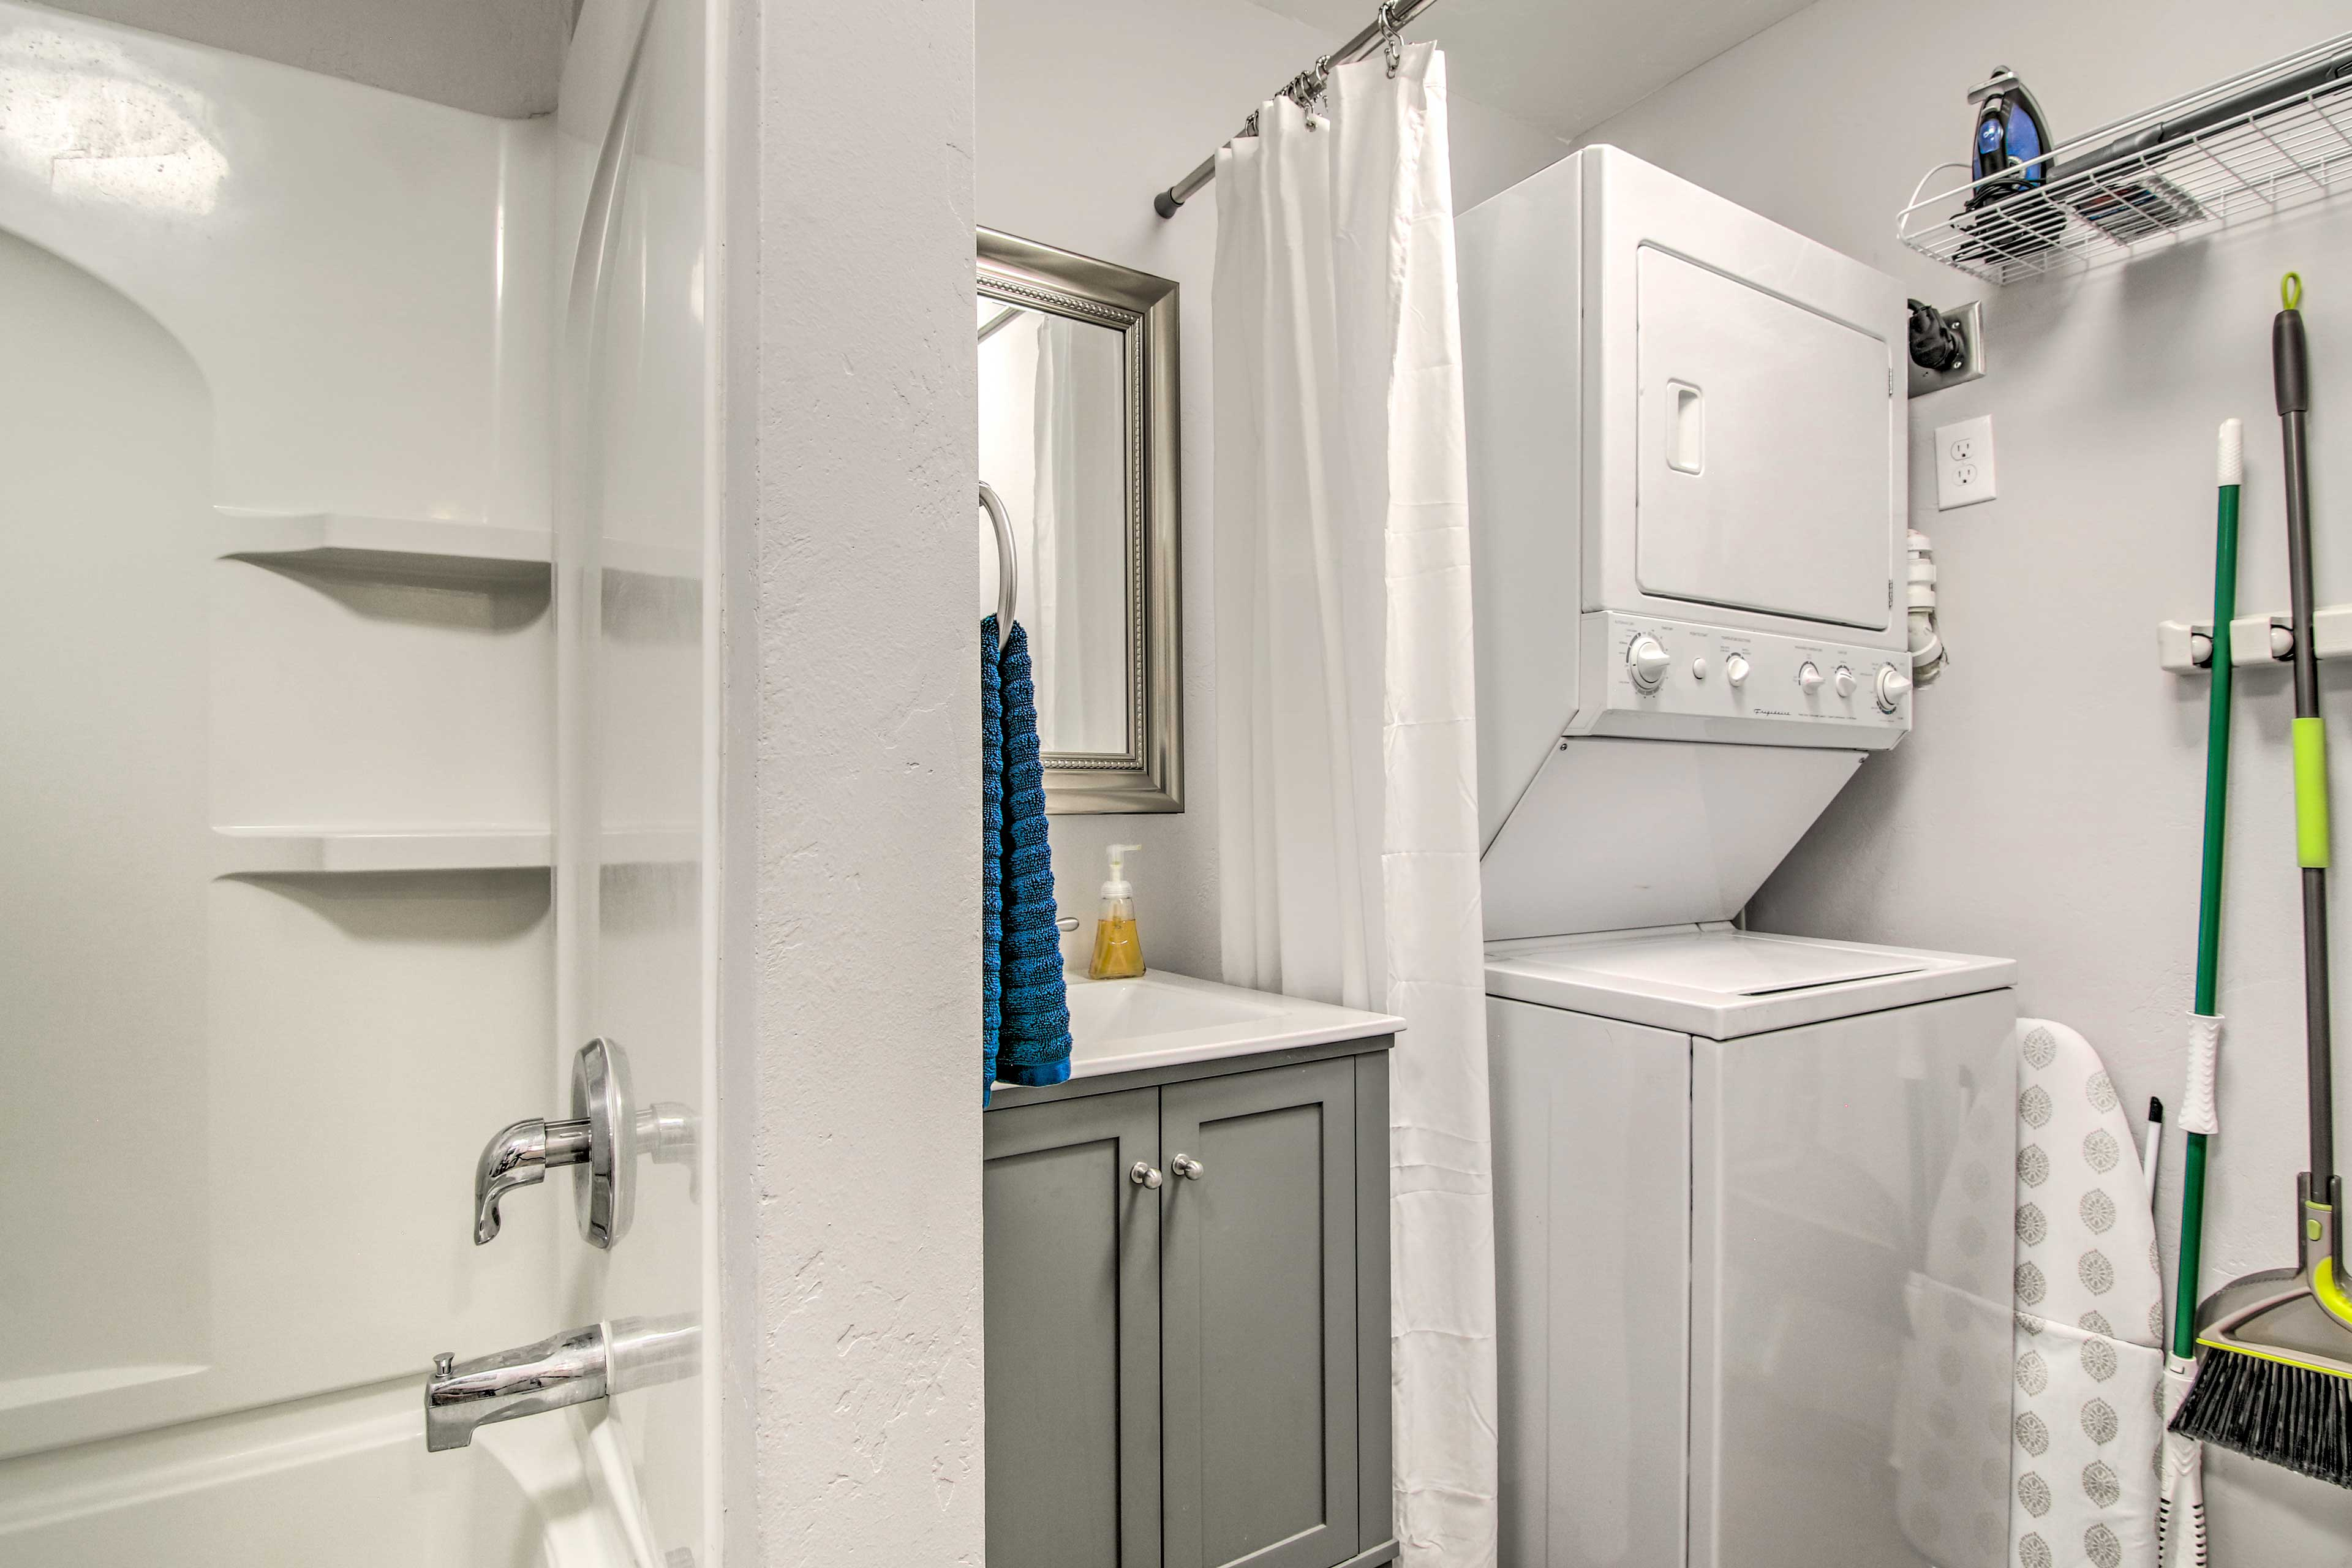 The full bathroom is also equipped with laundry machines.